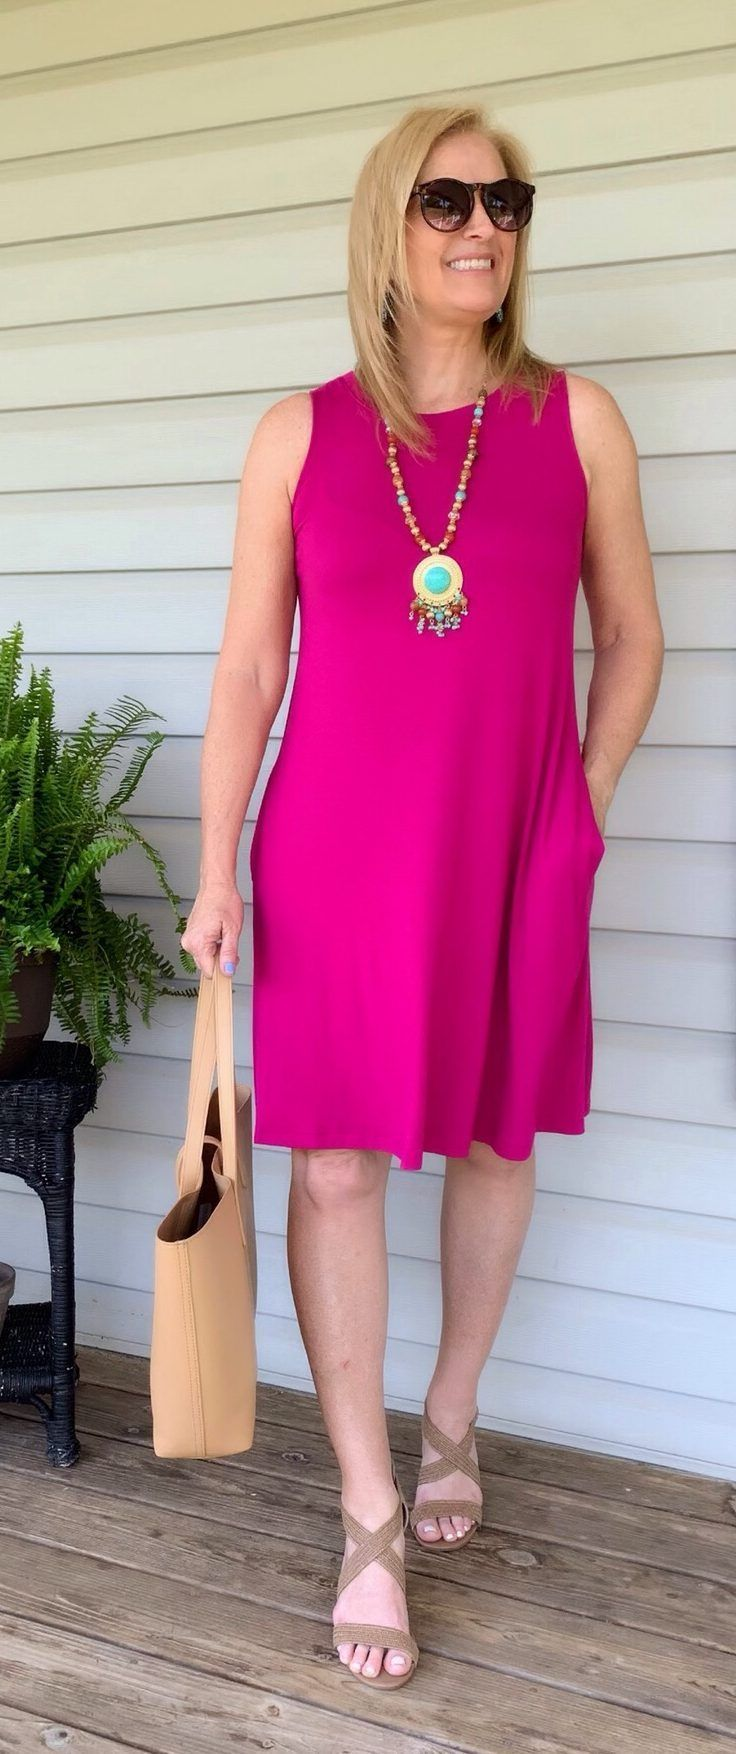 Pink Tank Dress For Comfort Style Styling On Purpose Dresses To Hide Tummy Sleeveless Knit Dress Forties Fashion [ 1754 x 736 Pixel ]